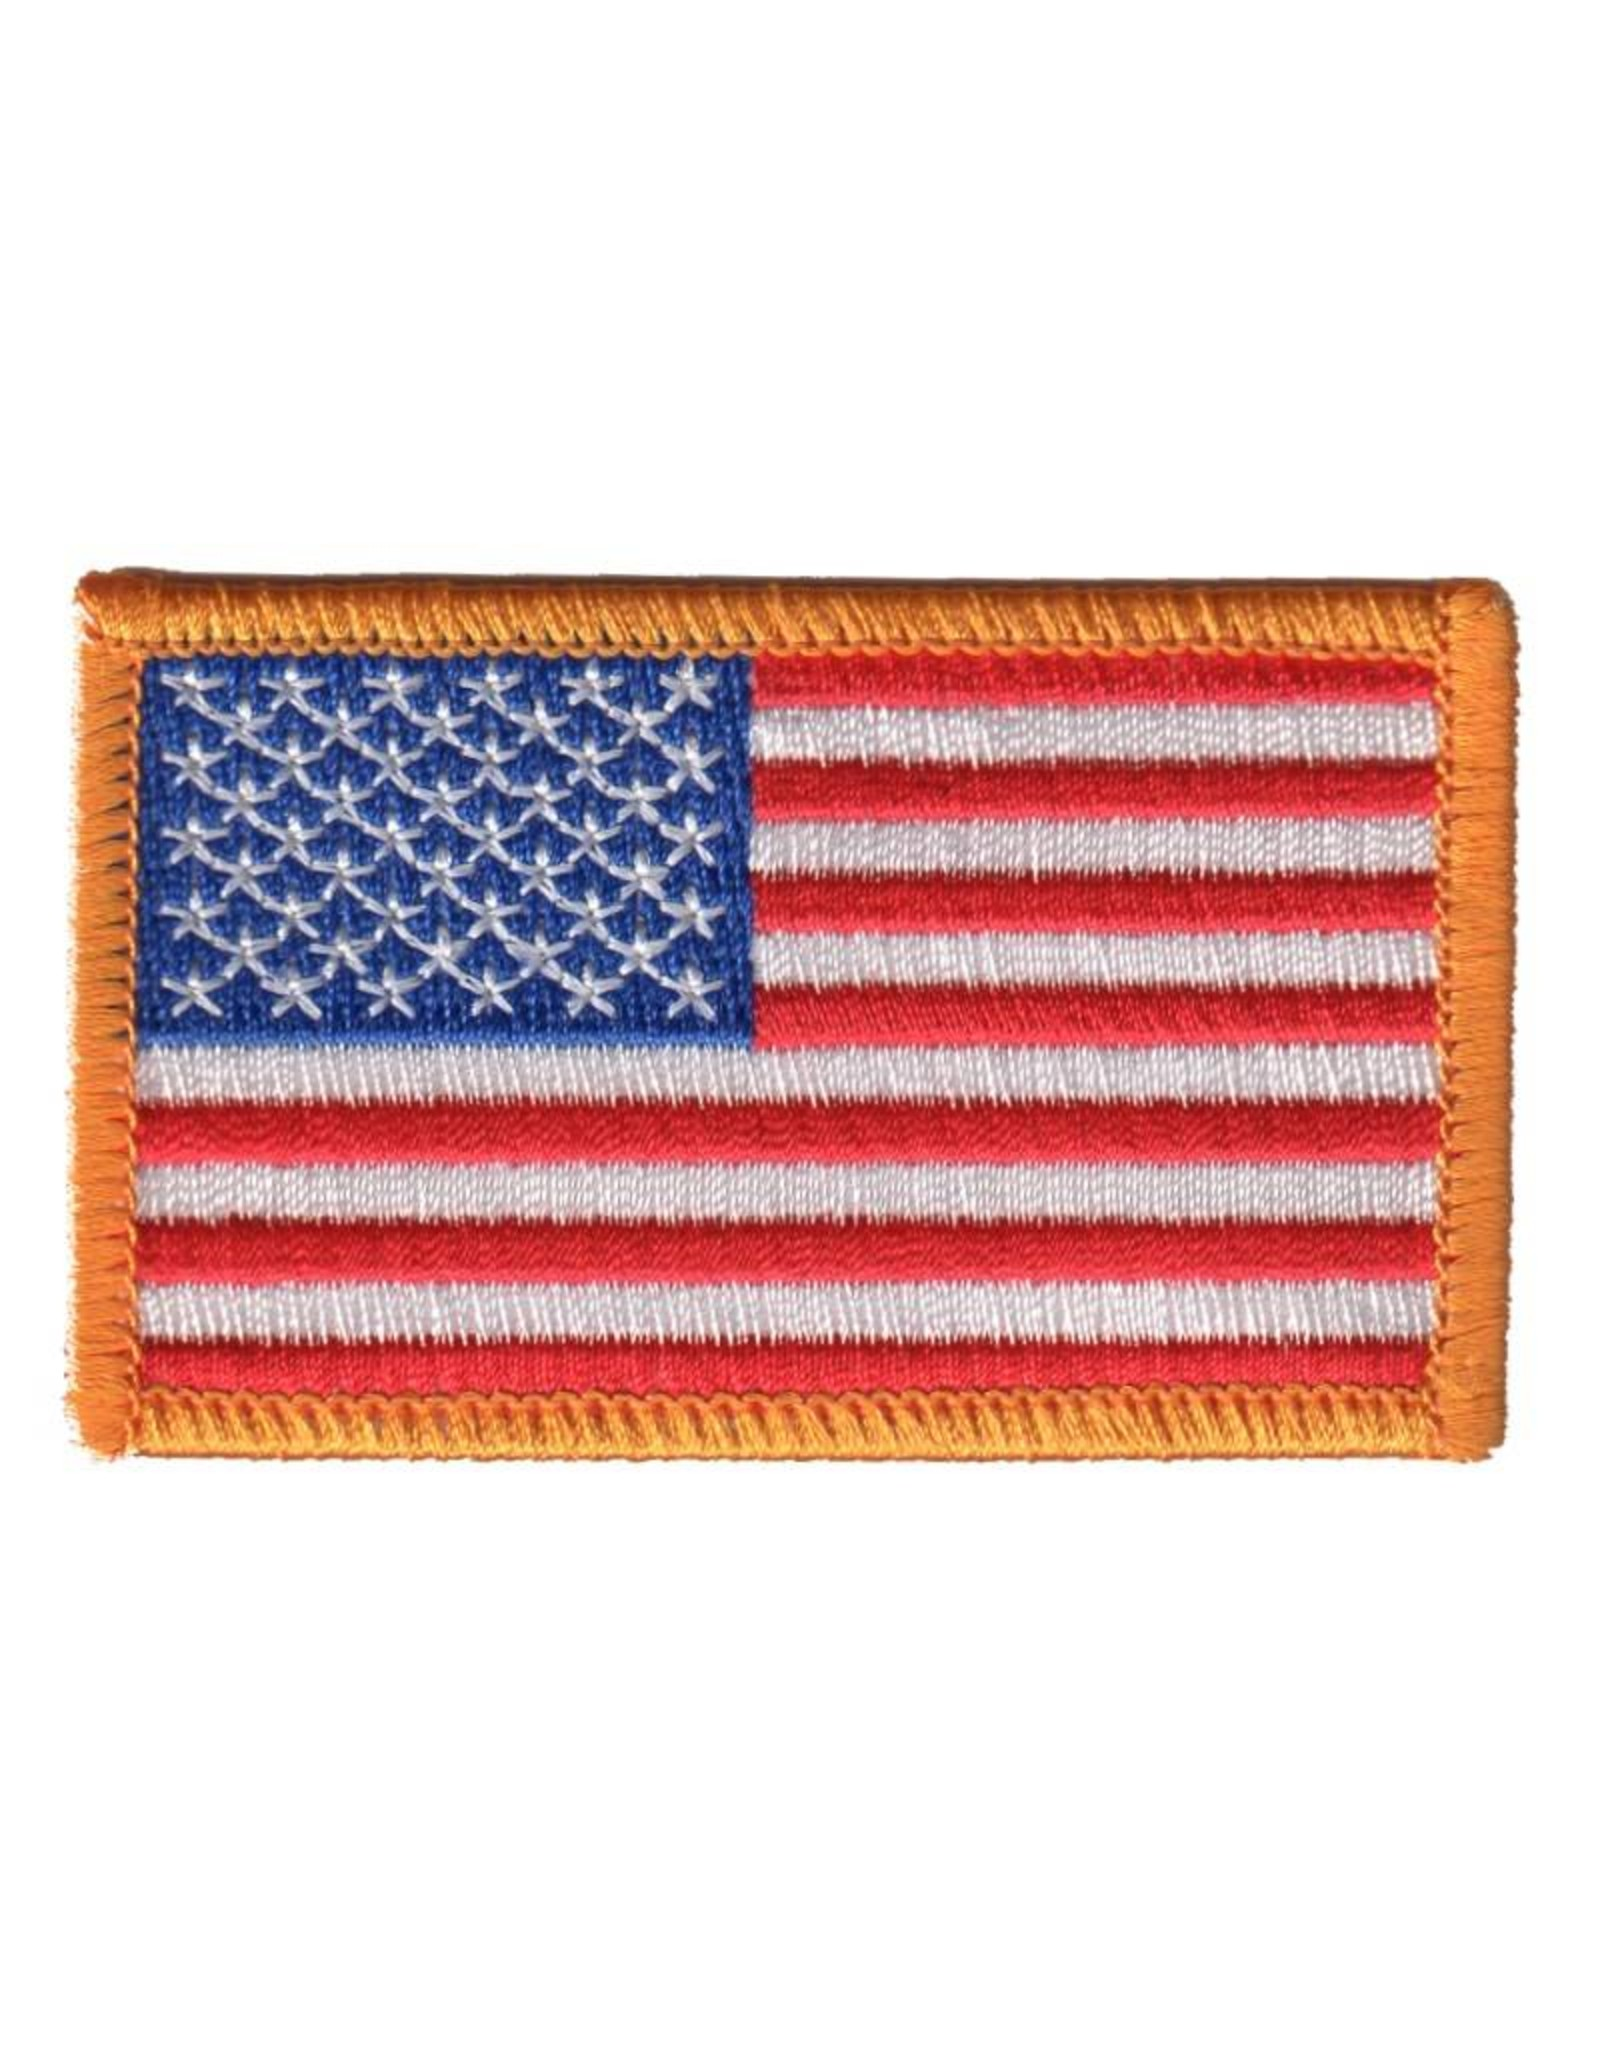 MidMil Embroidered American Flag Patch